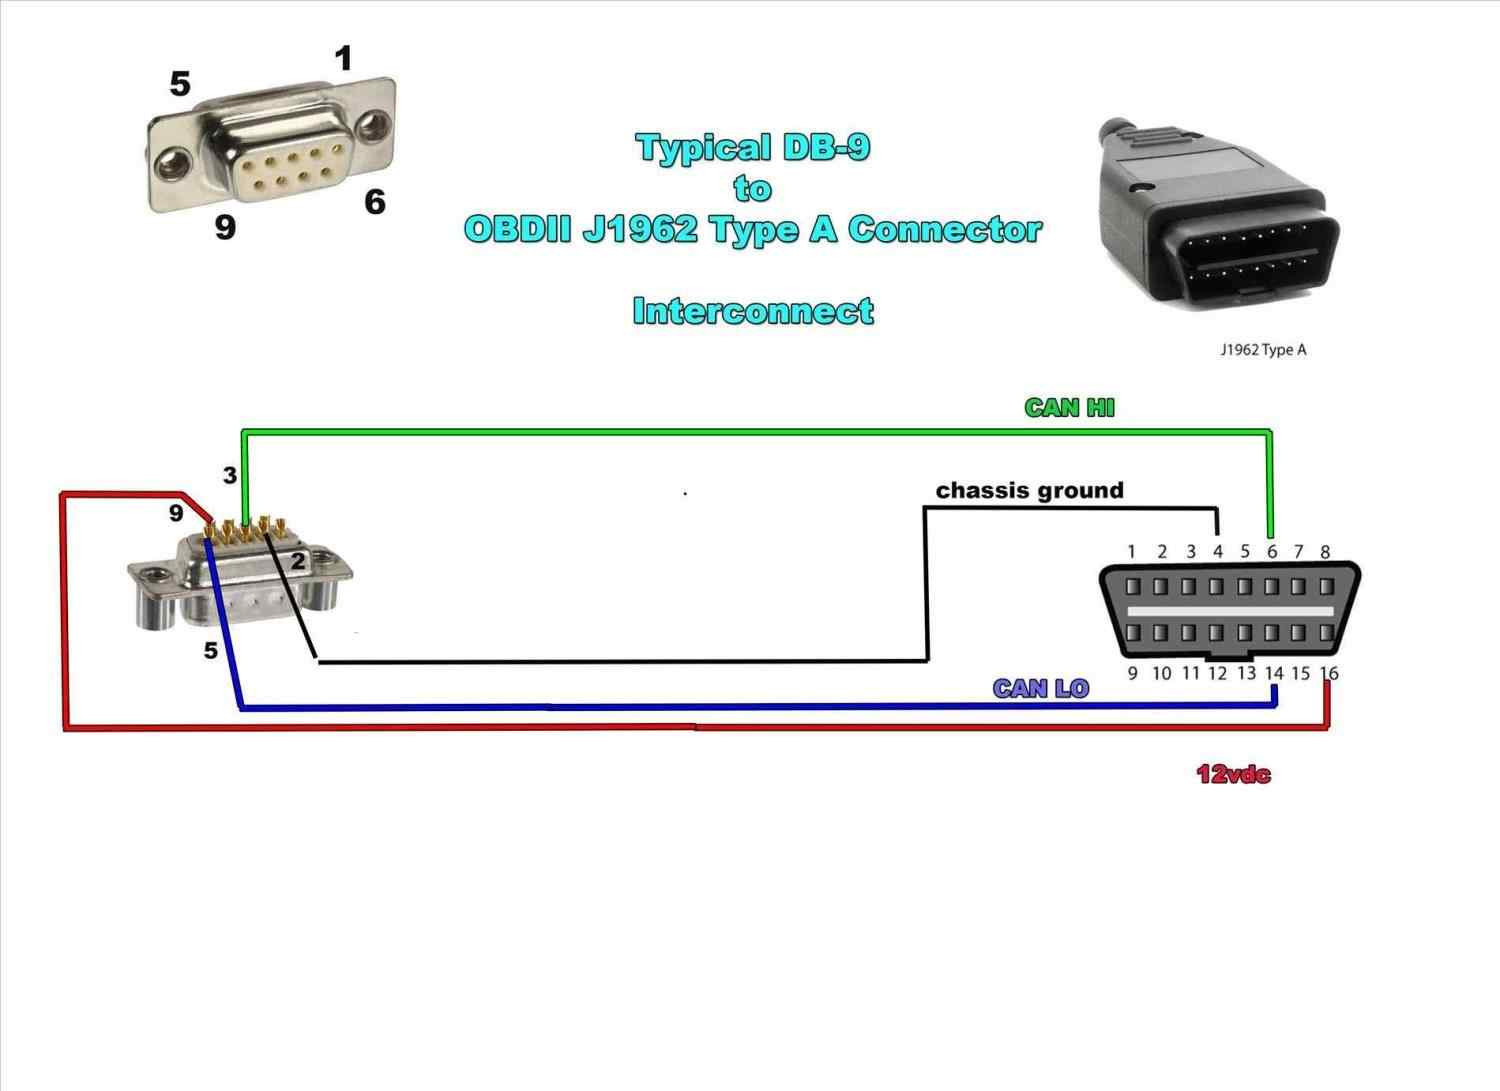 Mini B Usb Wiring Diagram -|- Vinny.oleo-Vegetal - Wiring Diagram Usb Cable